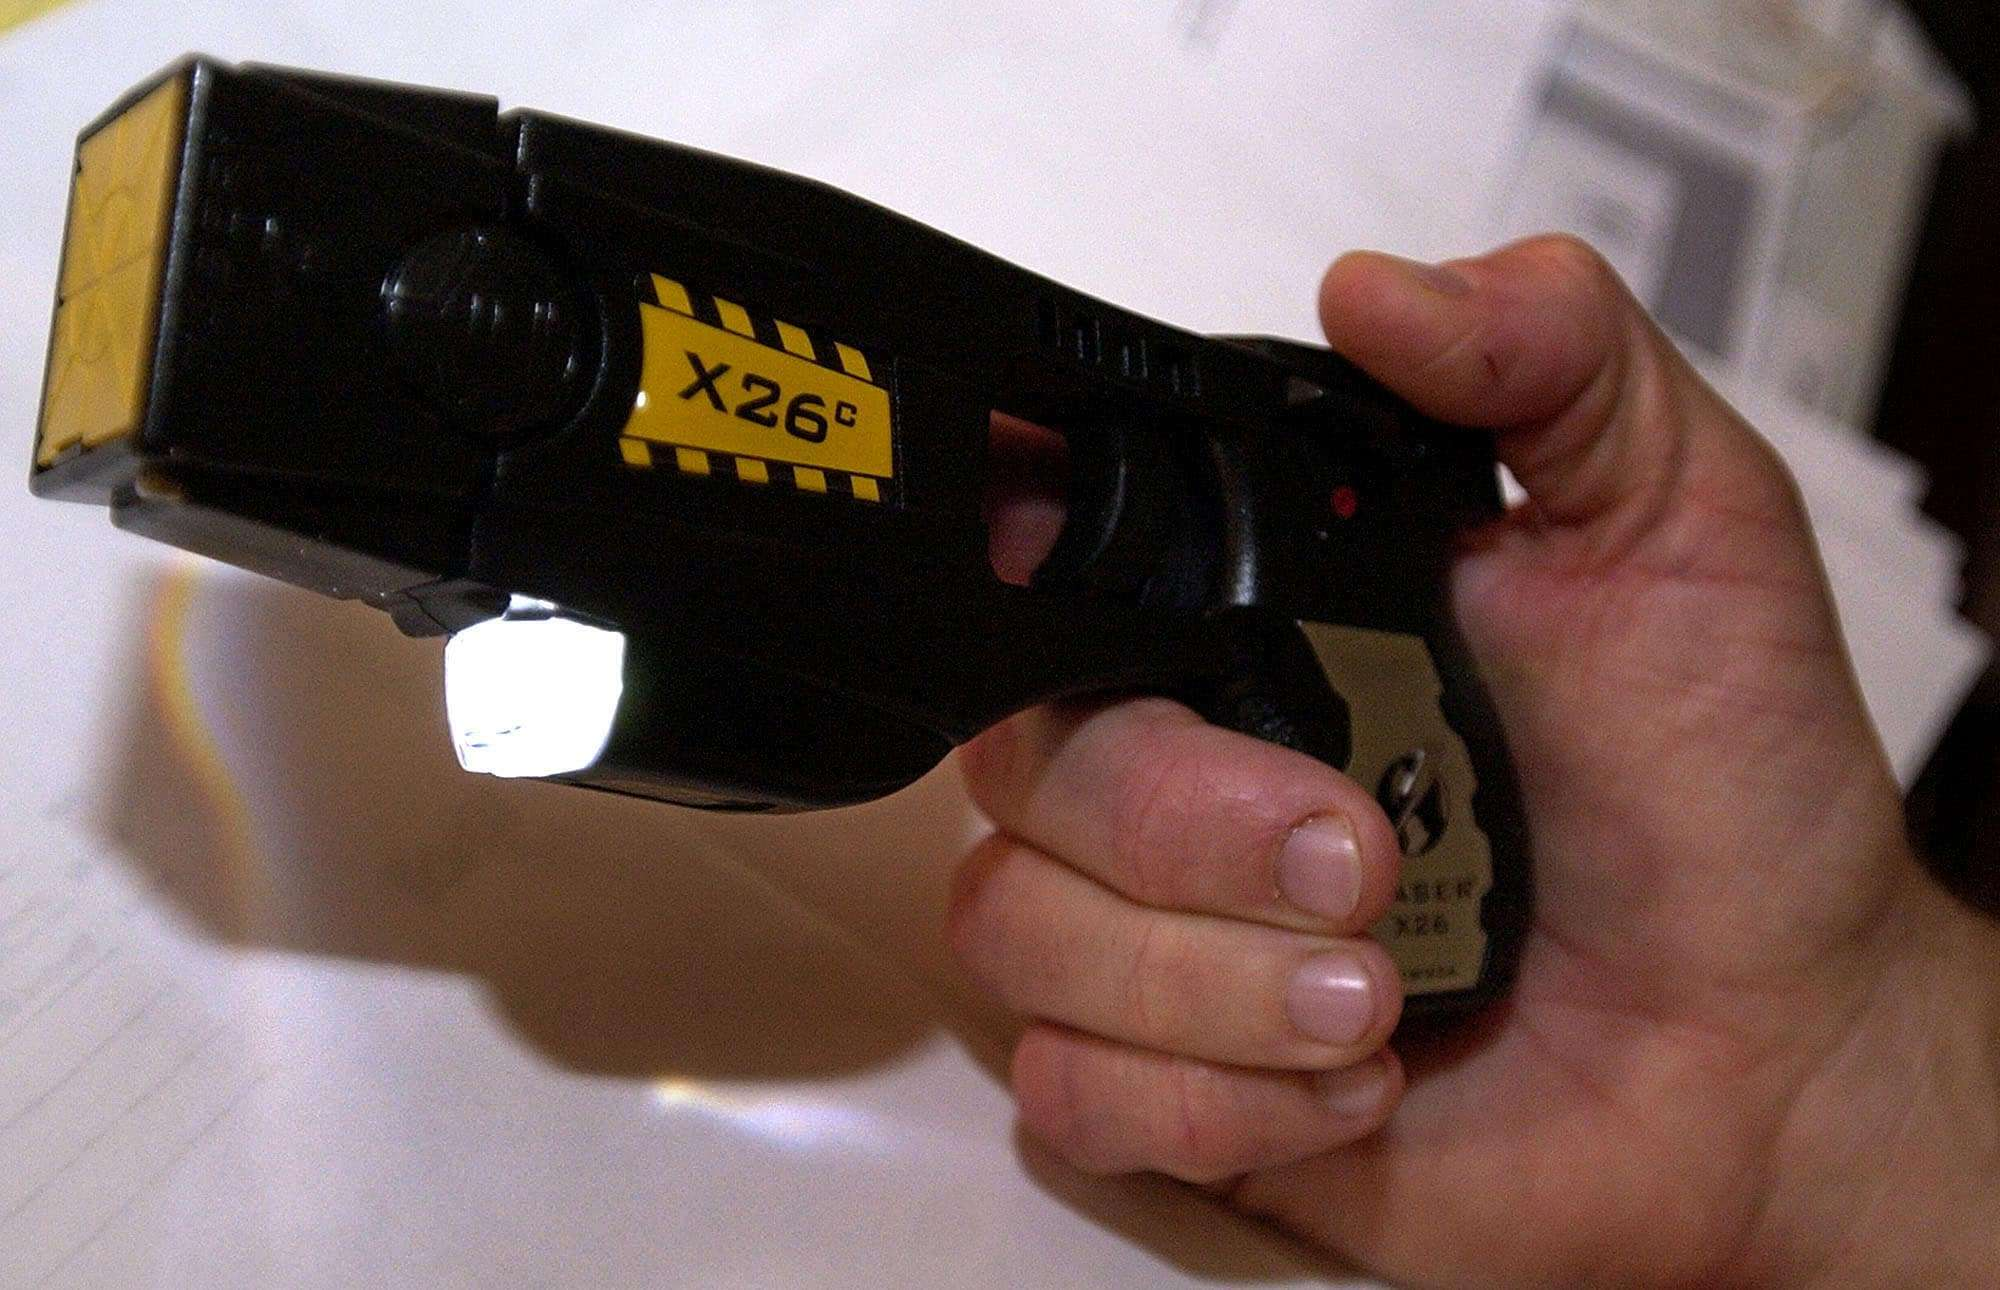 Steve Tuttle, director of communications for Taser International, Inc., holds the X26c stun gun Wednesday, Nov. 24, 2004 at the company's headquarters in Scottsdale, Ariz. The gun is offered to the general public for about $1,000. The company's stock has soared but there are growing concerns about whether the stun guns are truly as non-lethal as advertised. (AP Photo/Tom Hood)